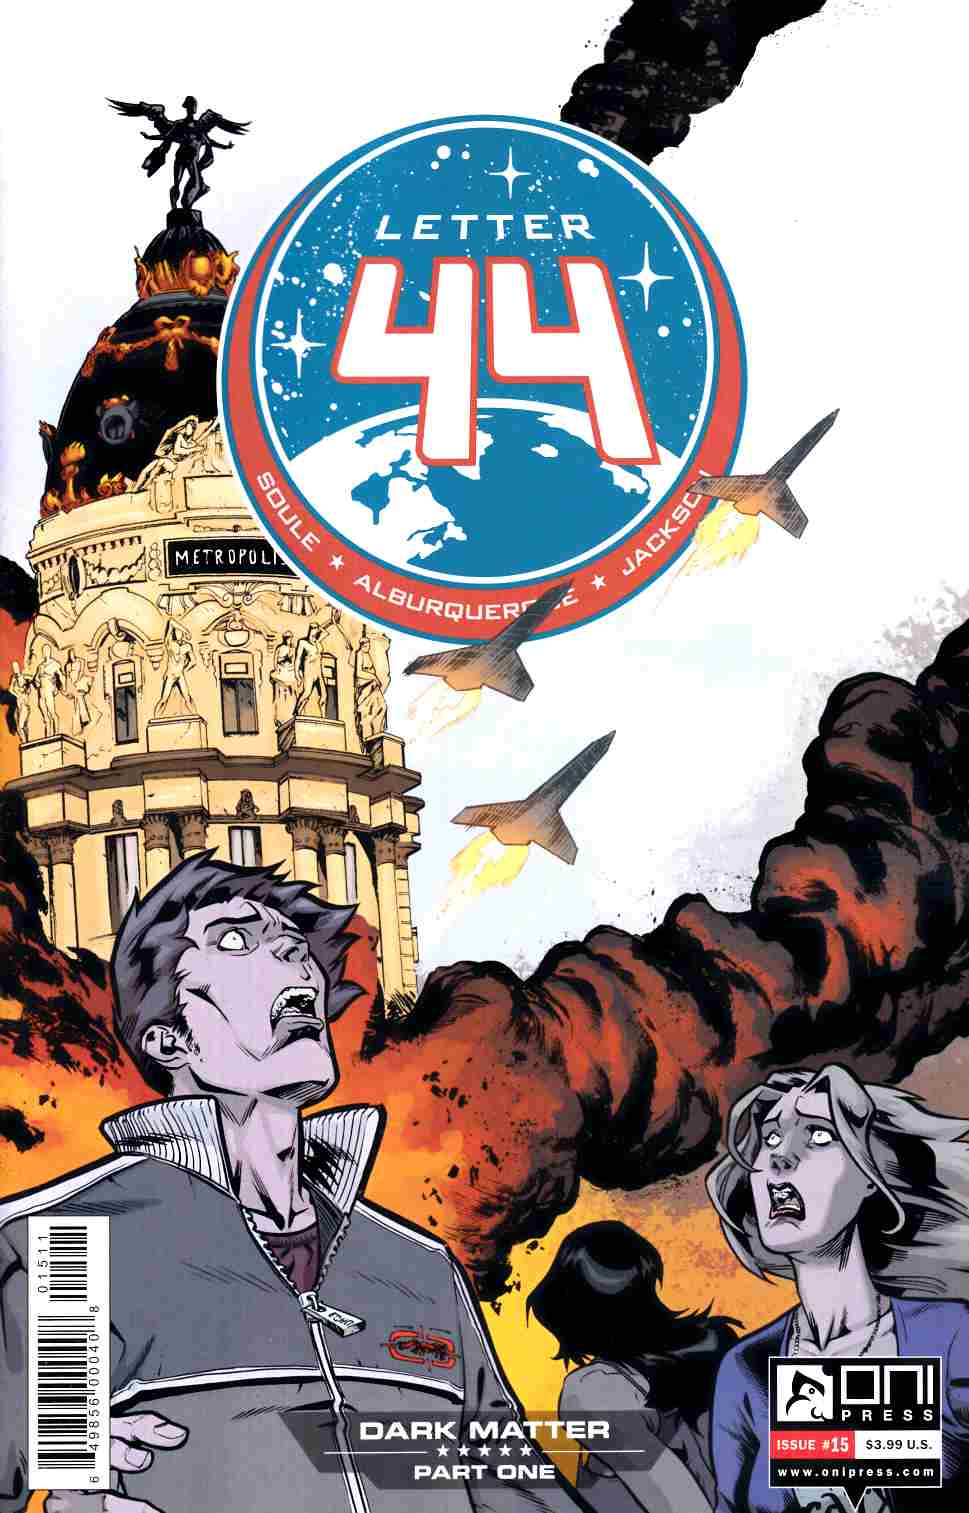 Letter 44 #15 [Oni Press Comic]